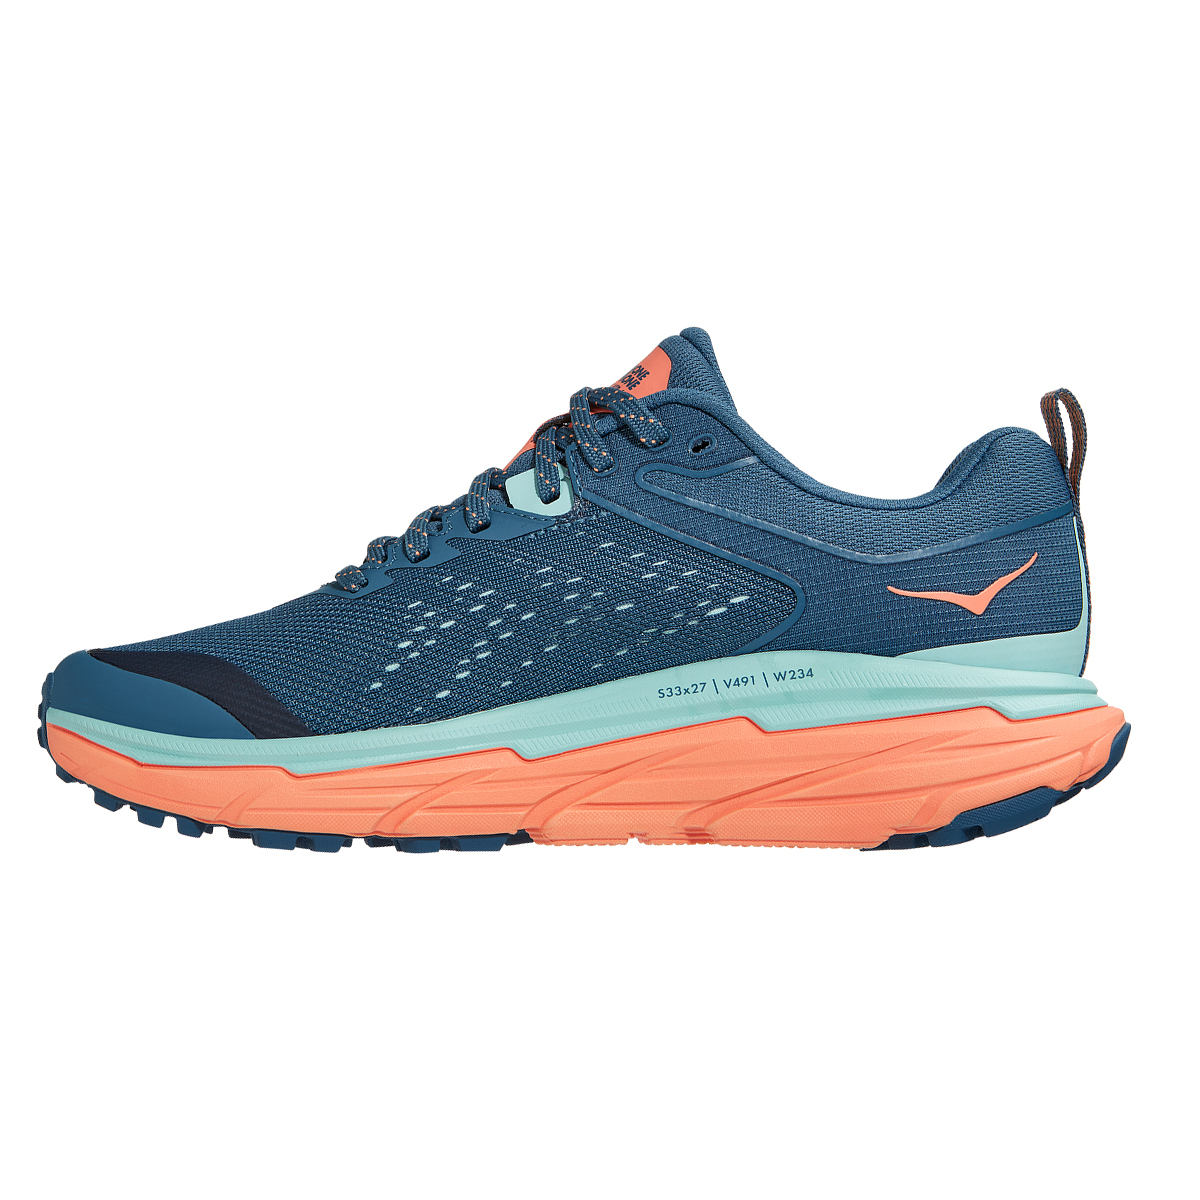 Women's Hoka One One Challenger ATR 6 Trail Running Shoe - Color: Real Teal / Cantaloupe - Size: 5 - Width: Regular, Real Teal / Cantaloupe, large, image 2